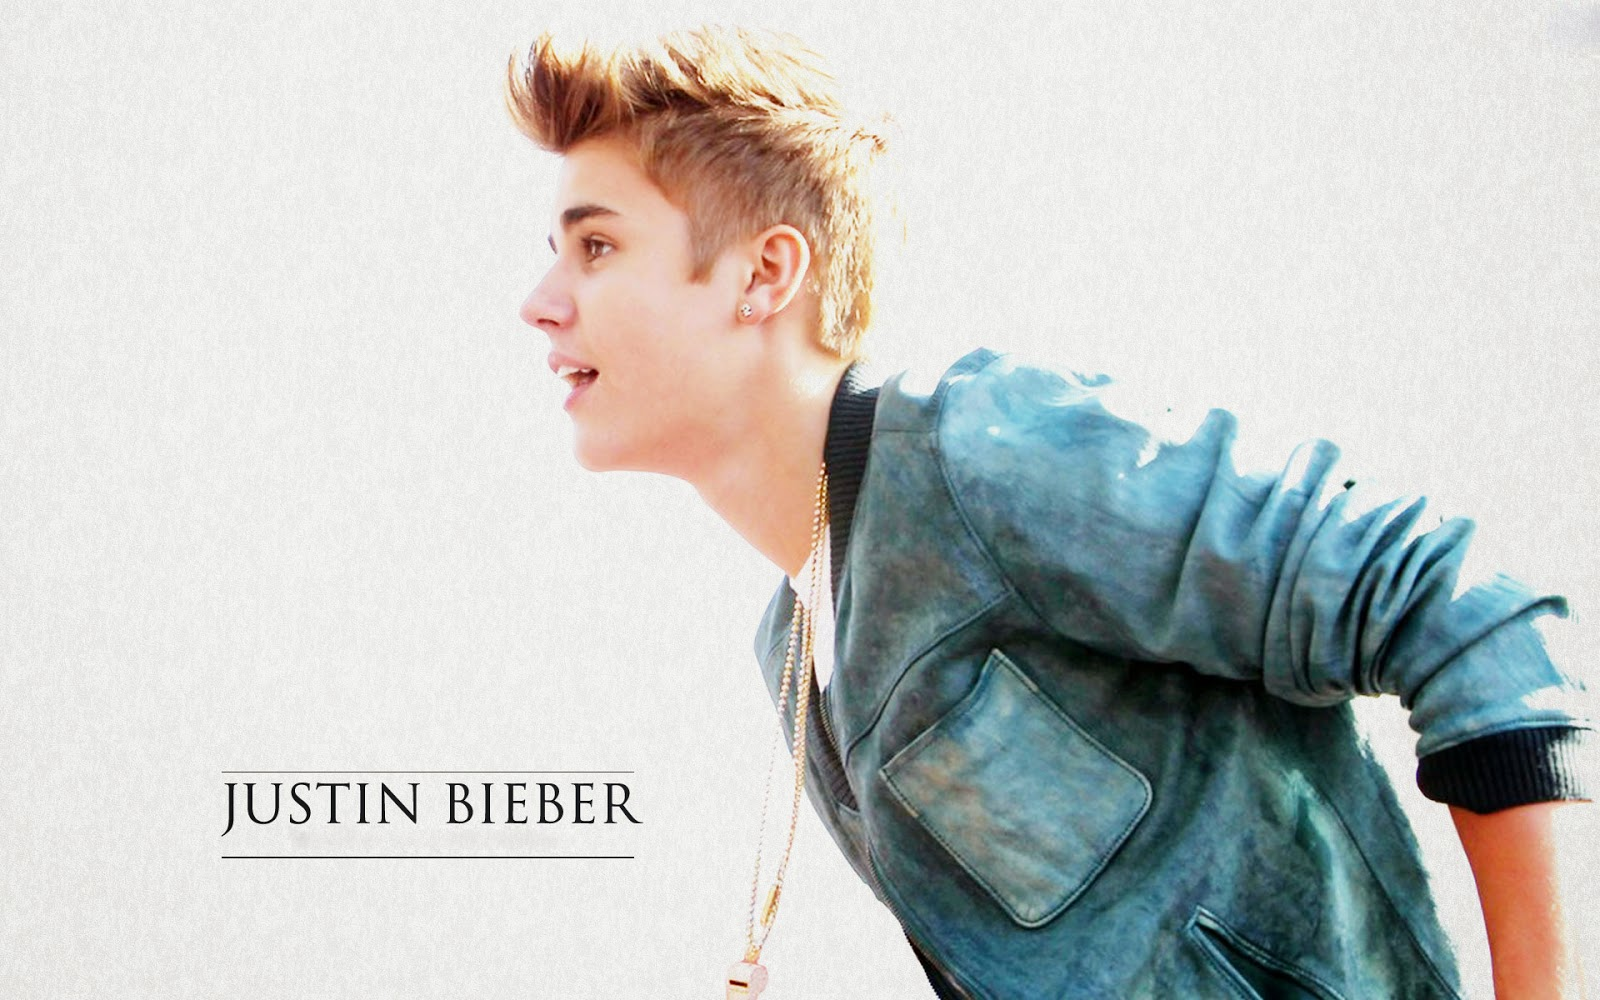 18174 justin bieber hd wallpaper 2015 1600x1000